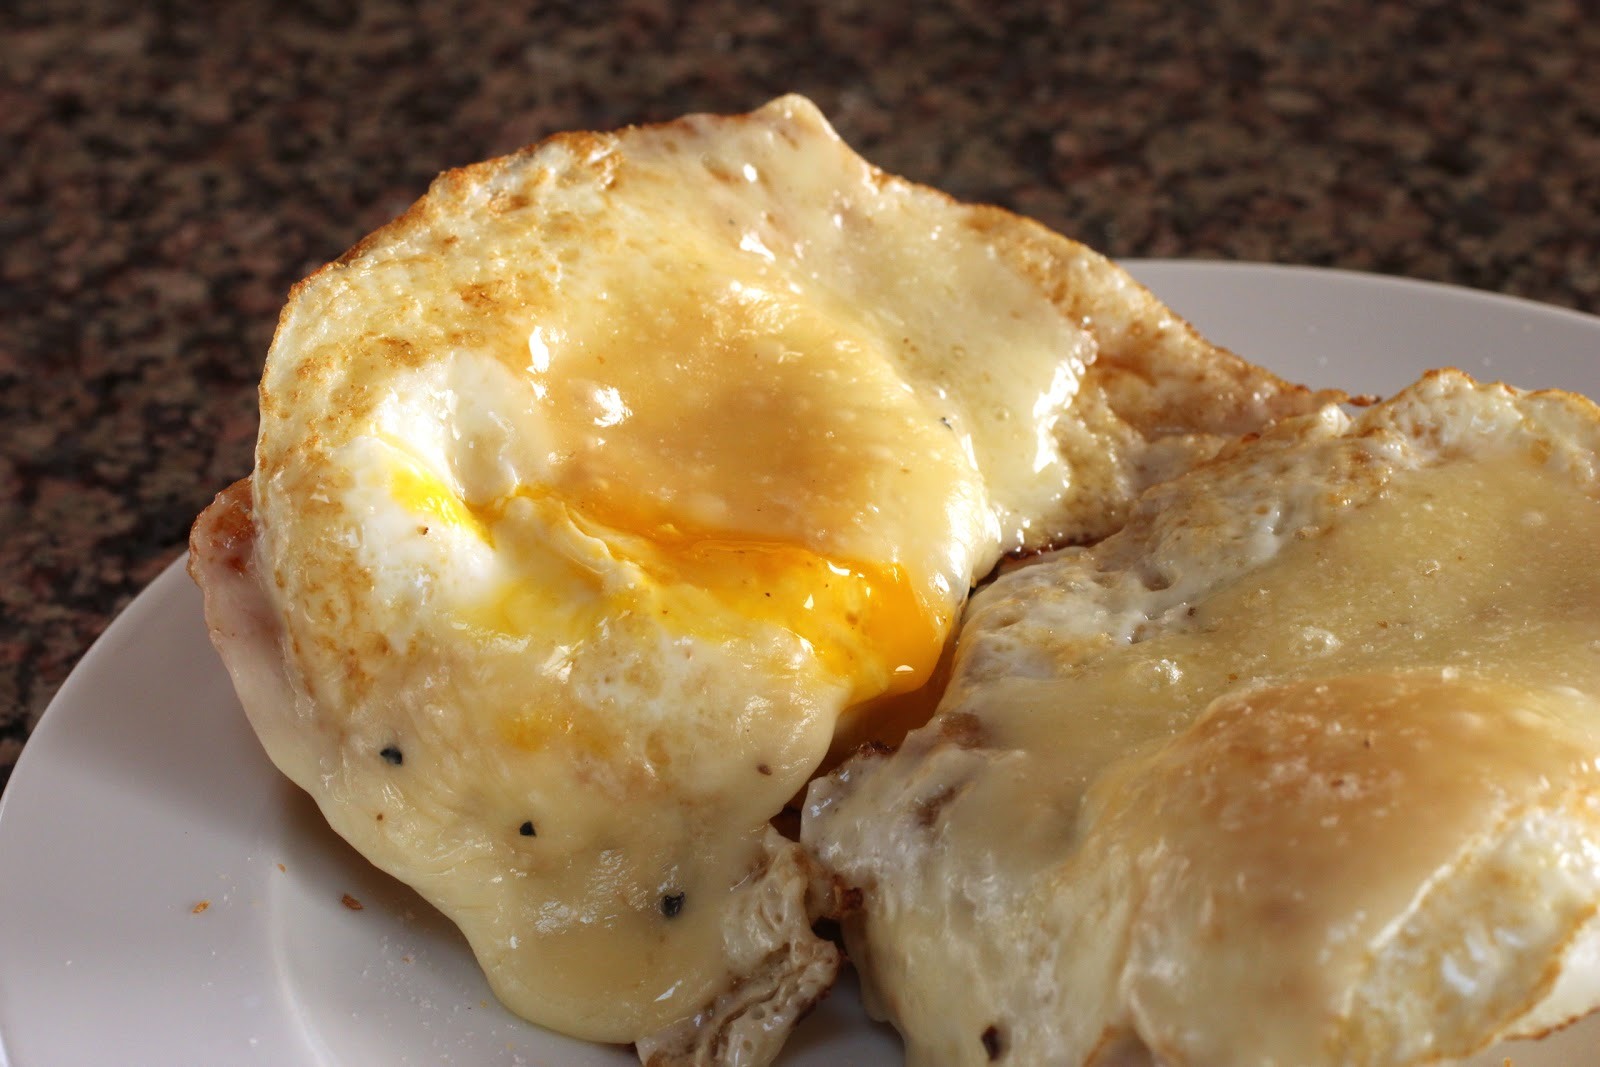 Fried egg sandwich with truffles